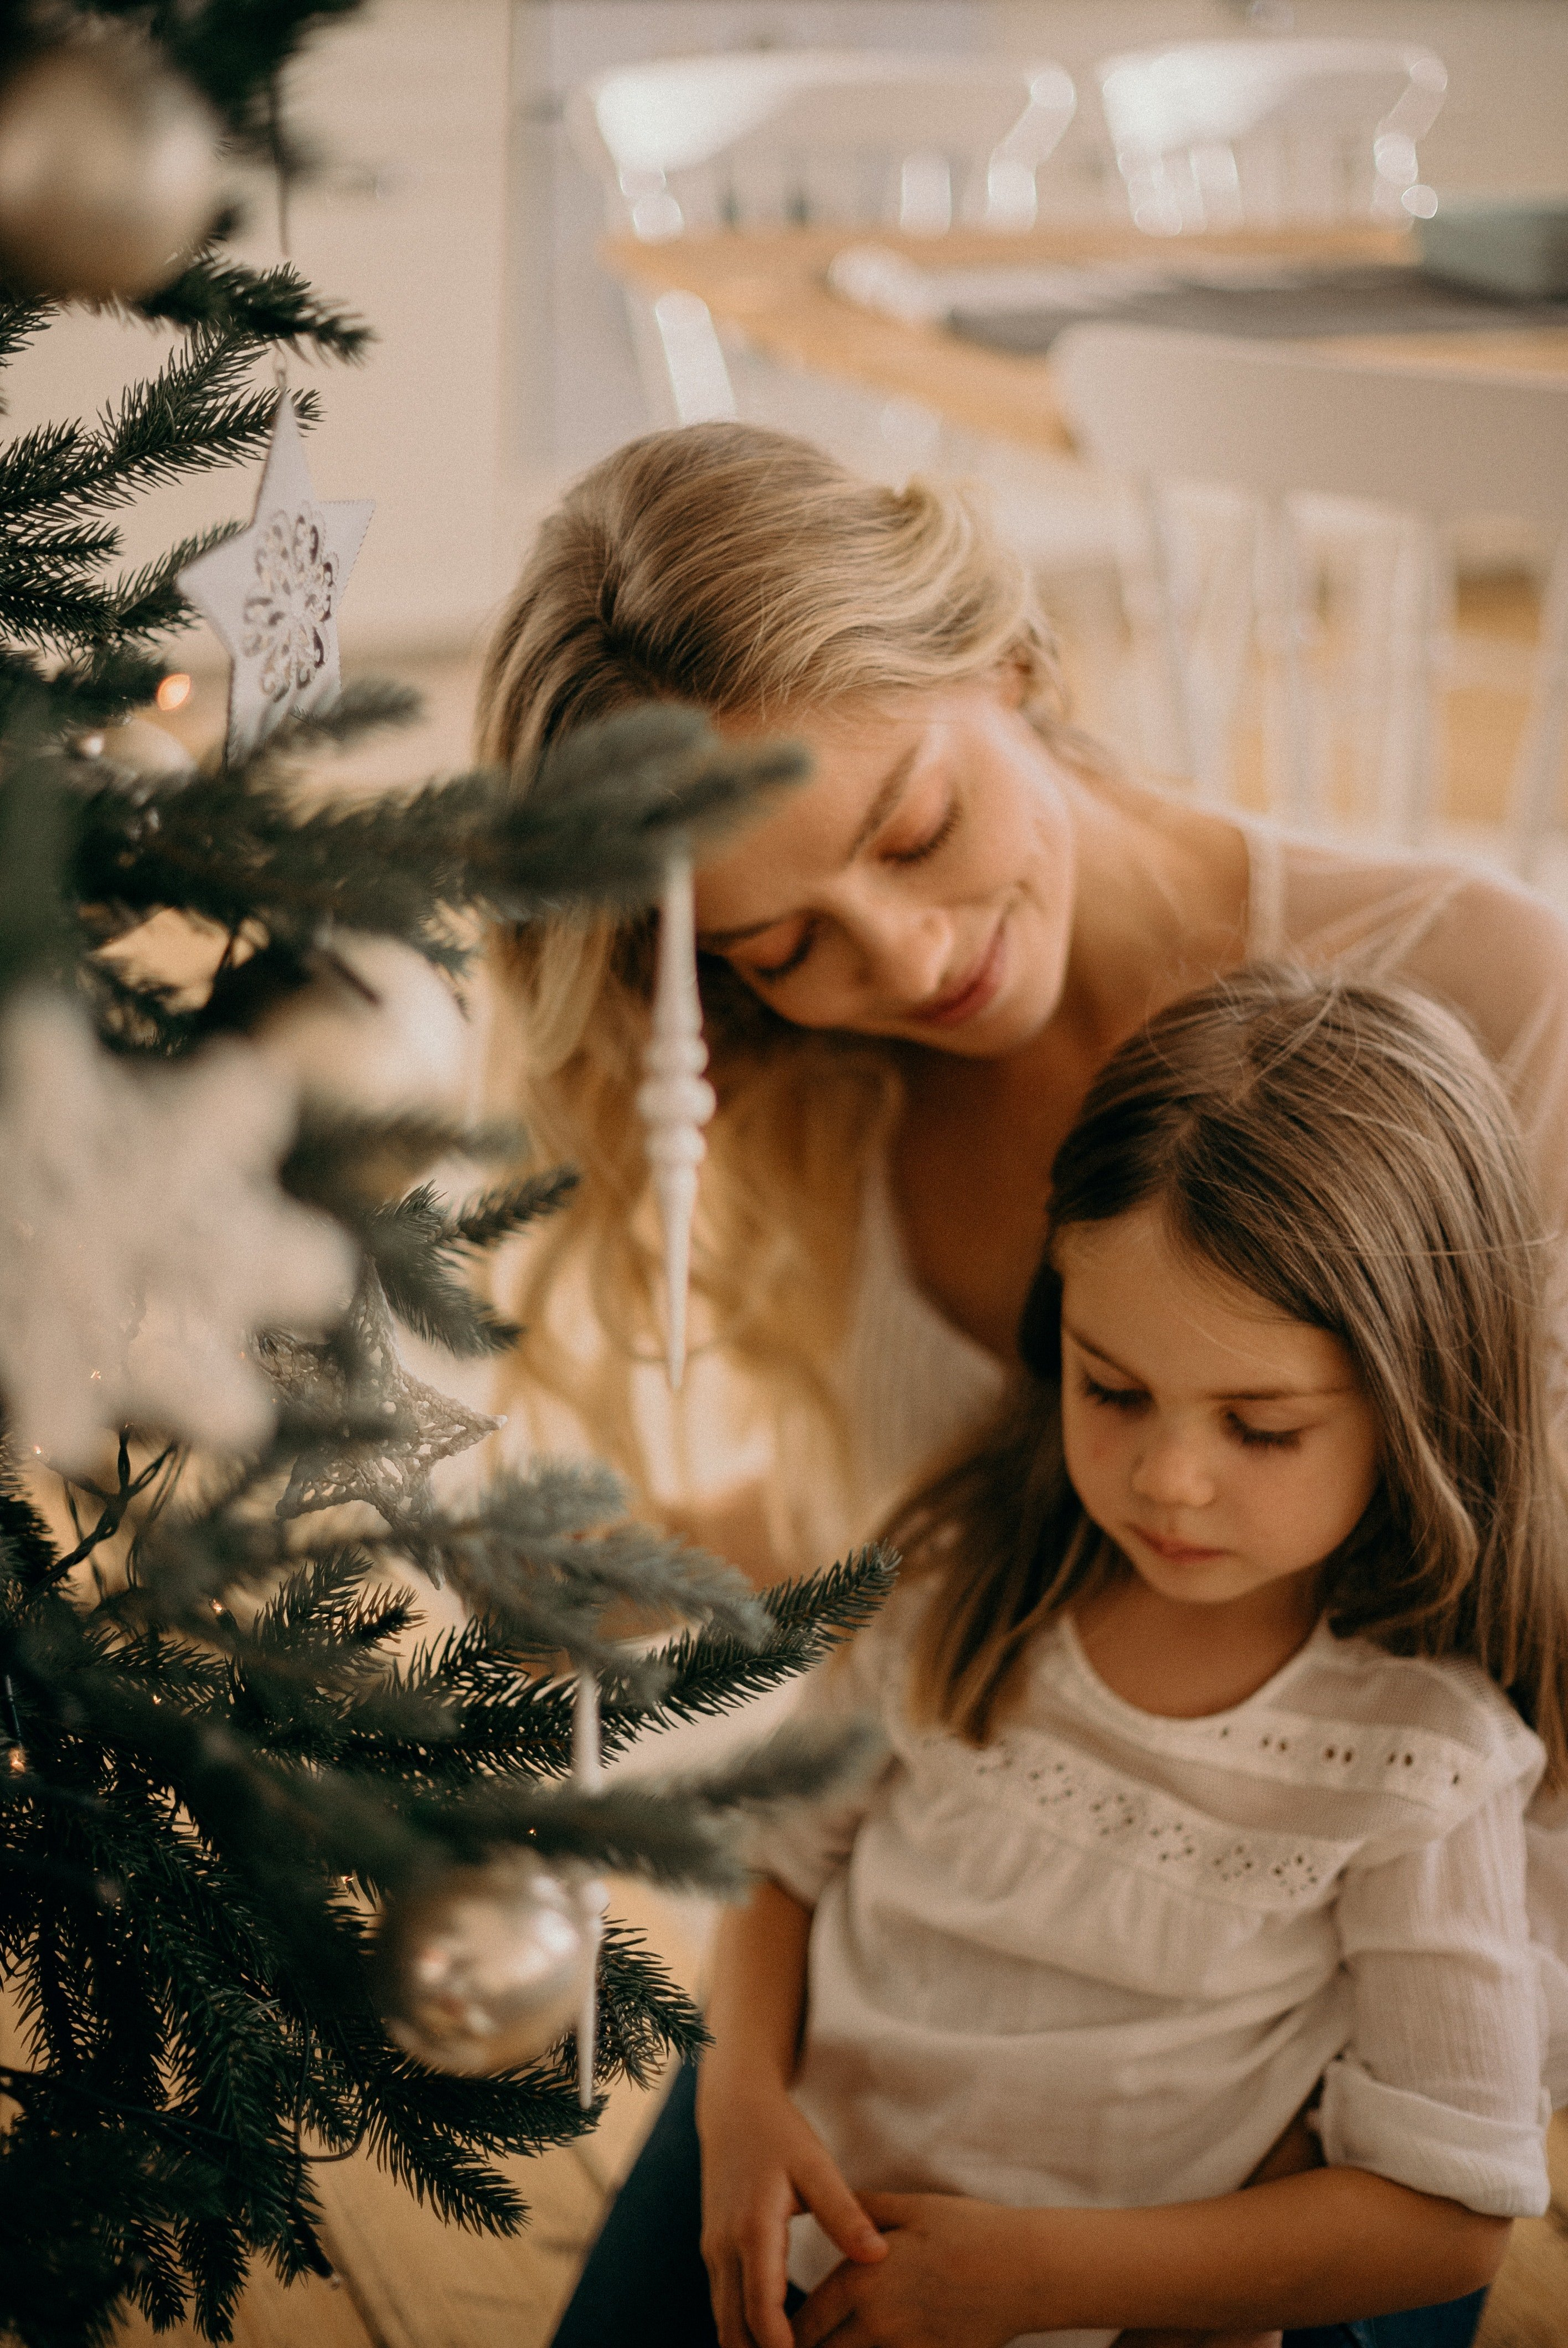 Mother and daughter.   Source: Pexels